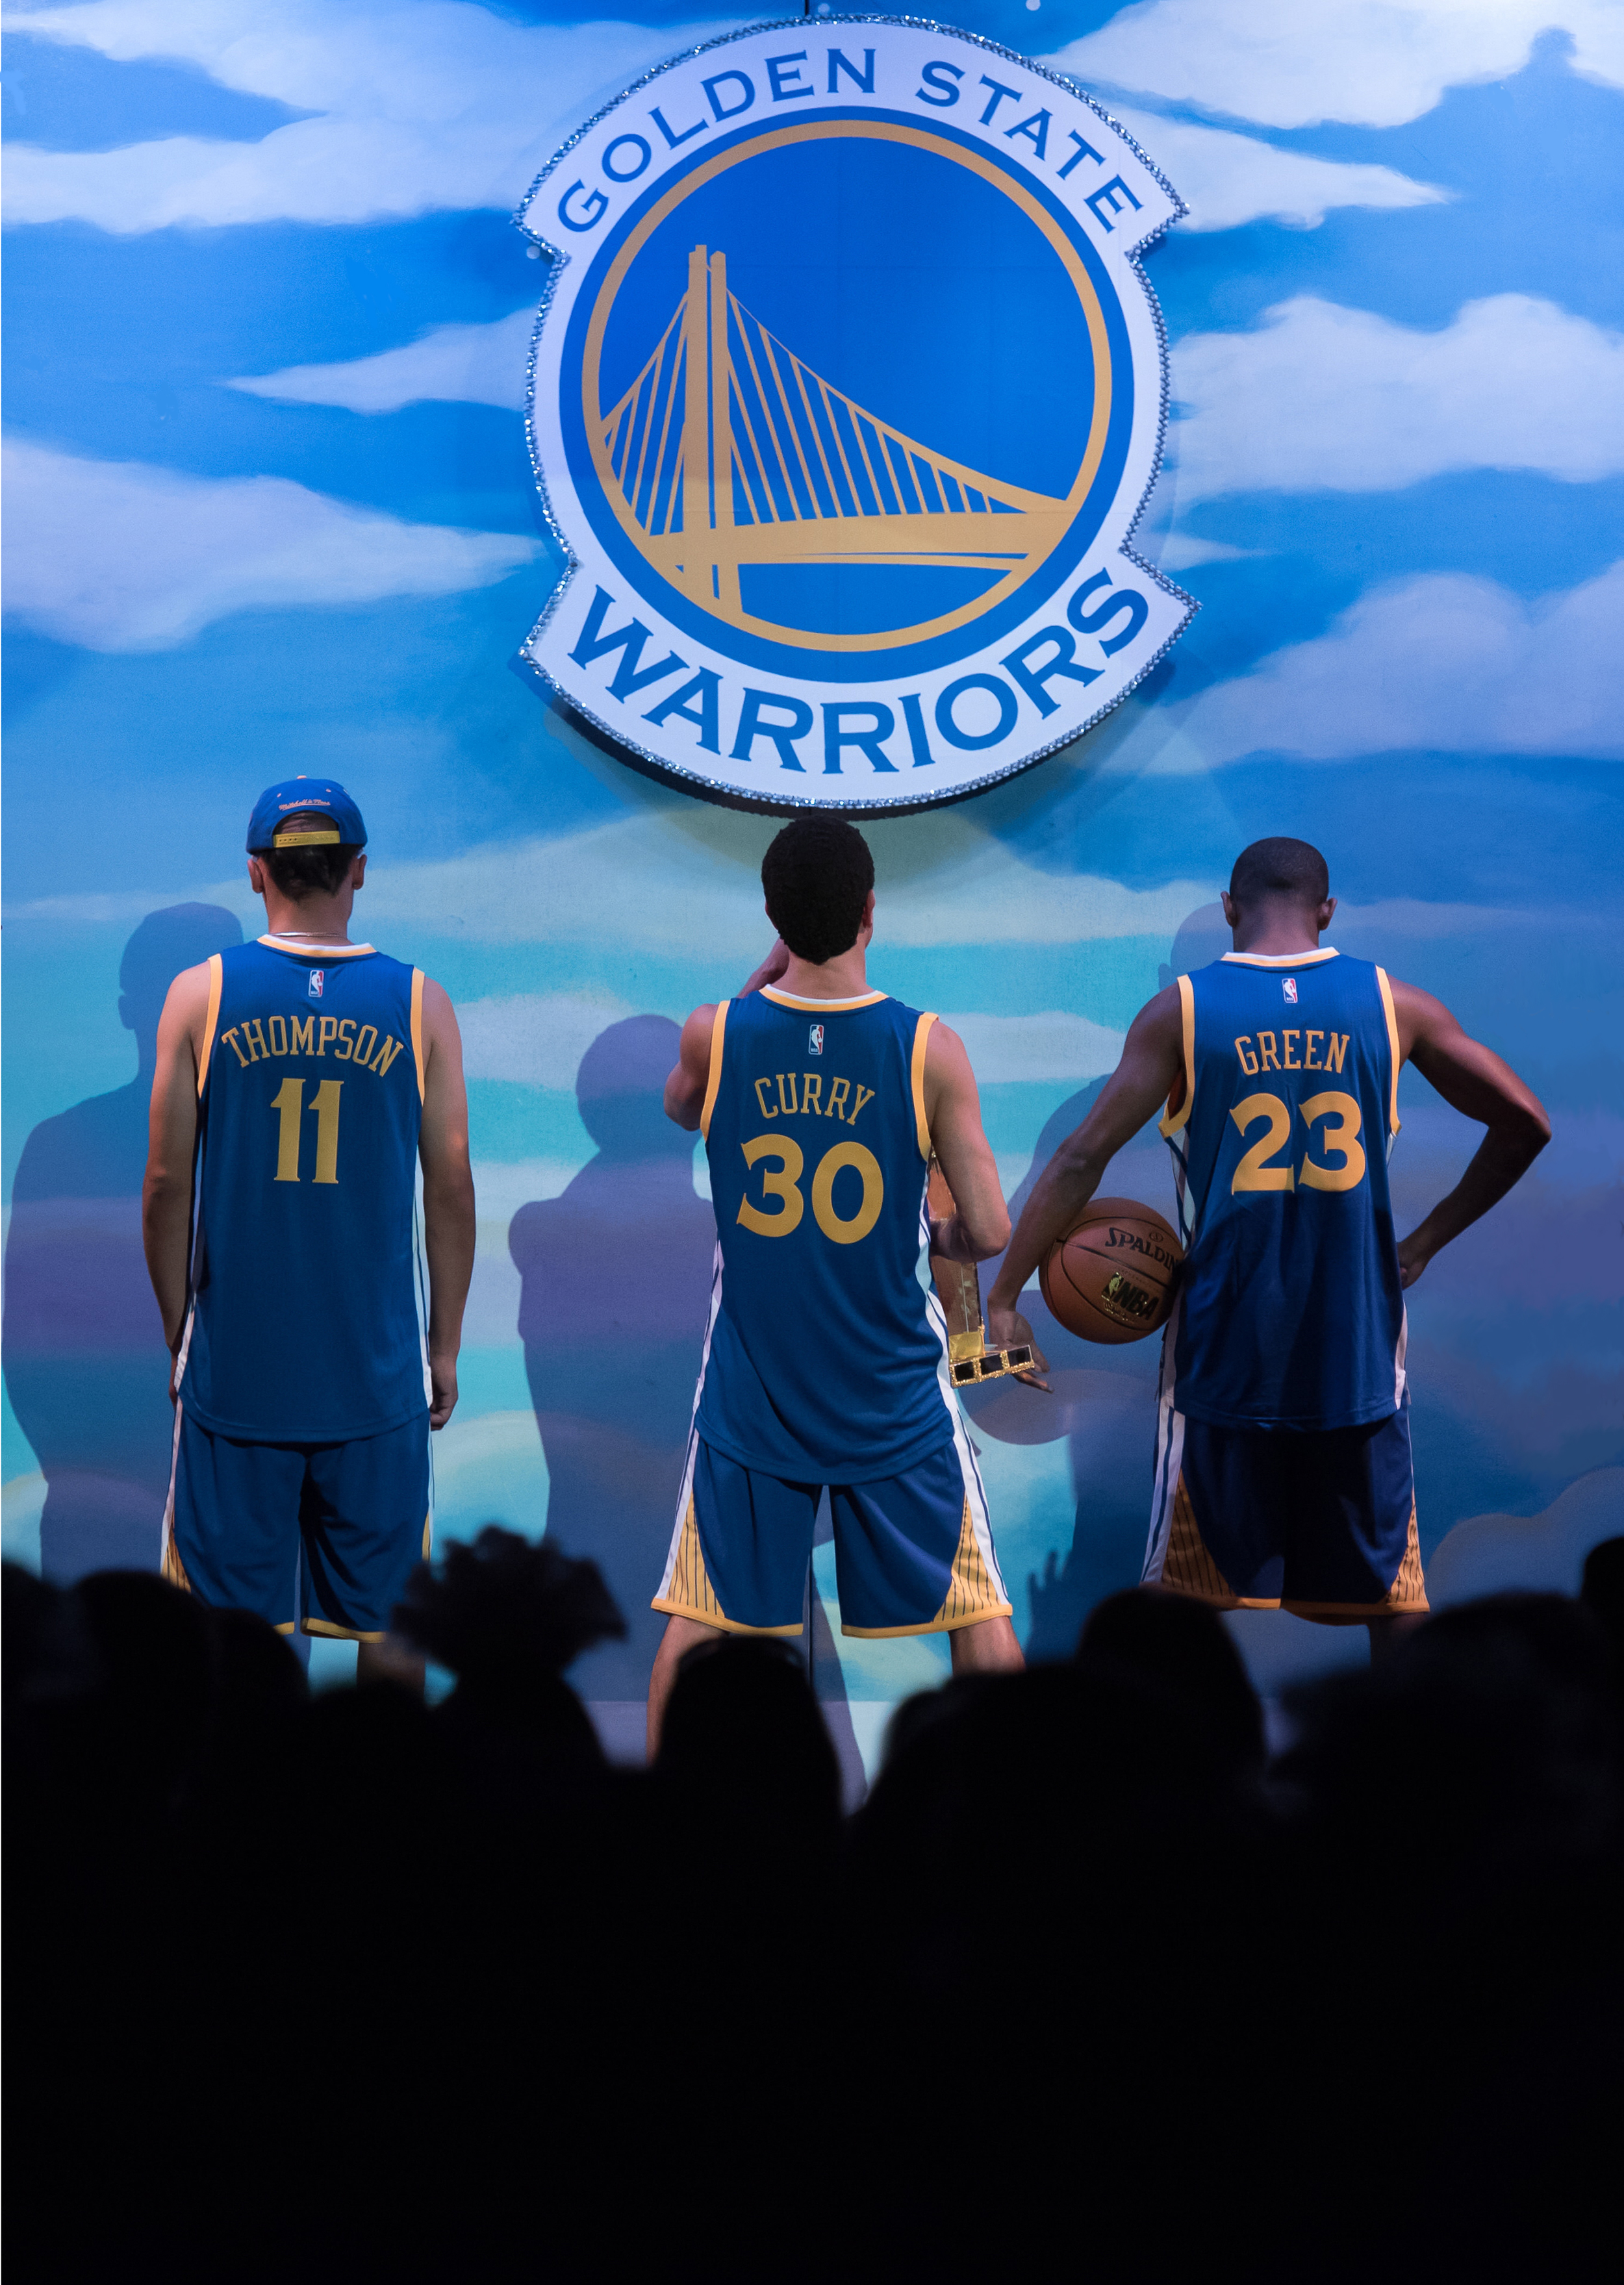 The Golden State Warriors | Photo credit: Rick Markovich